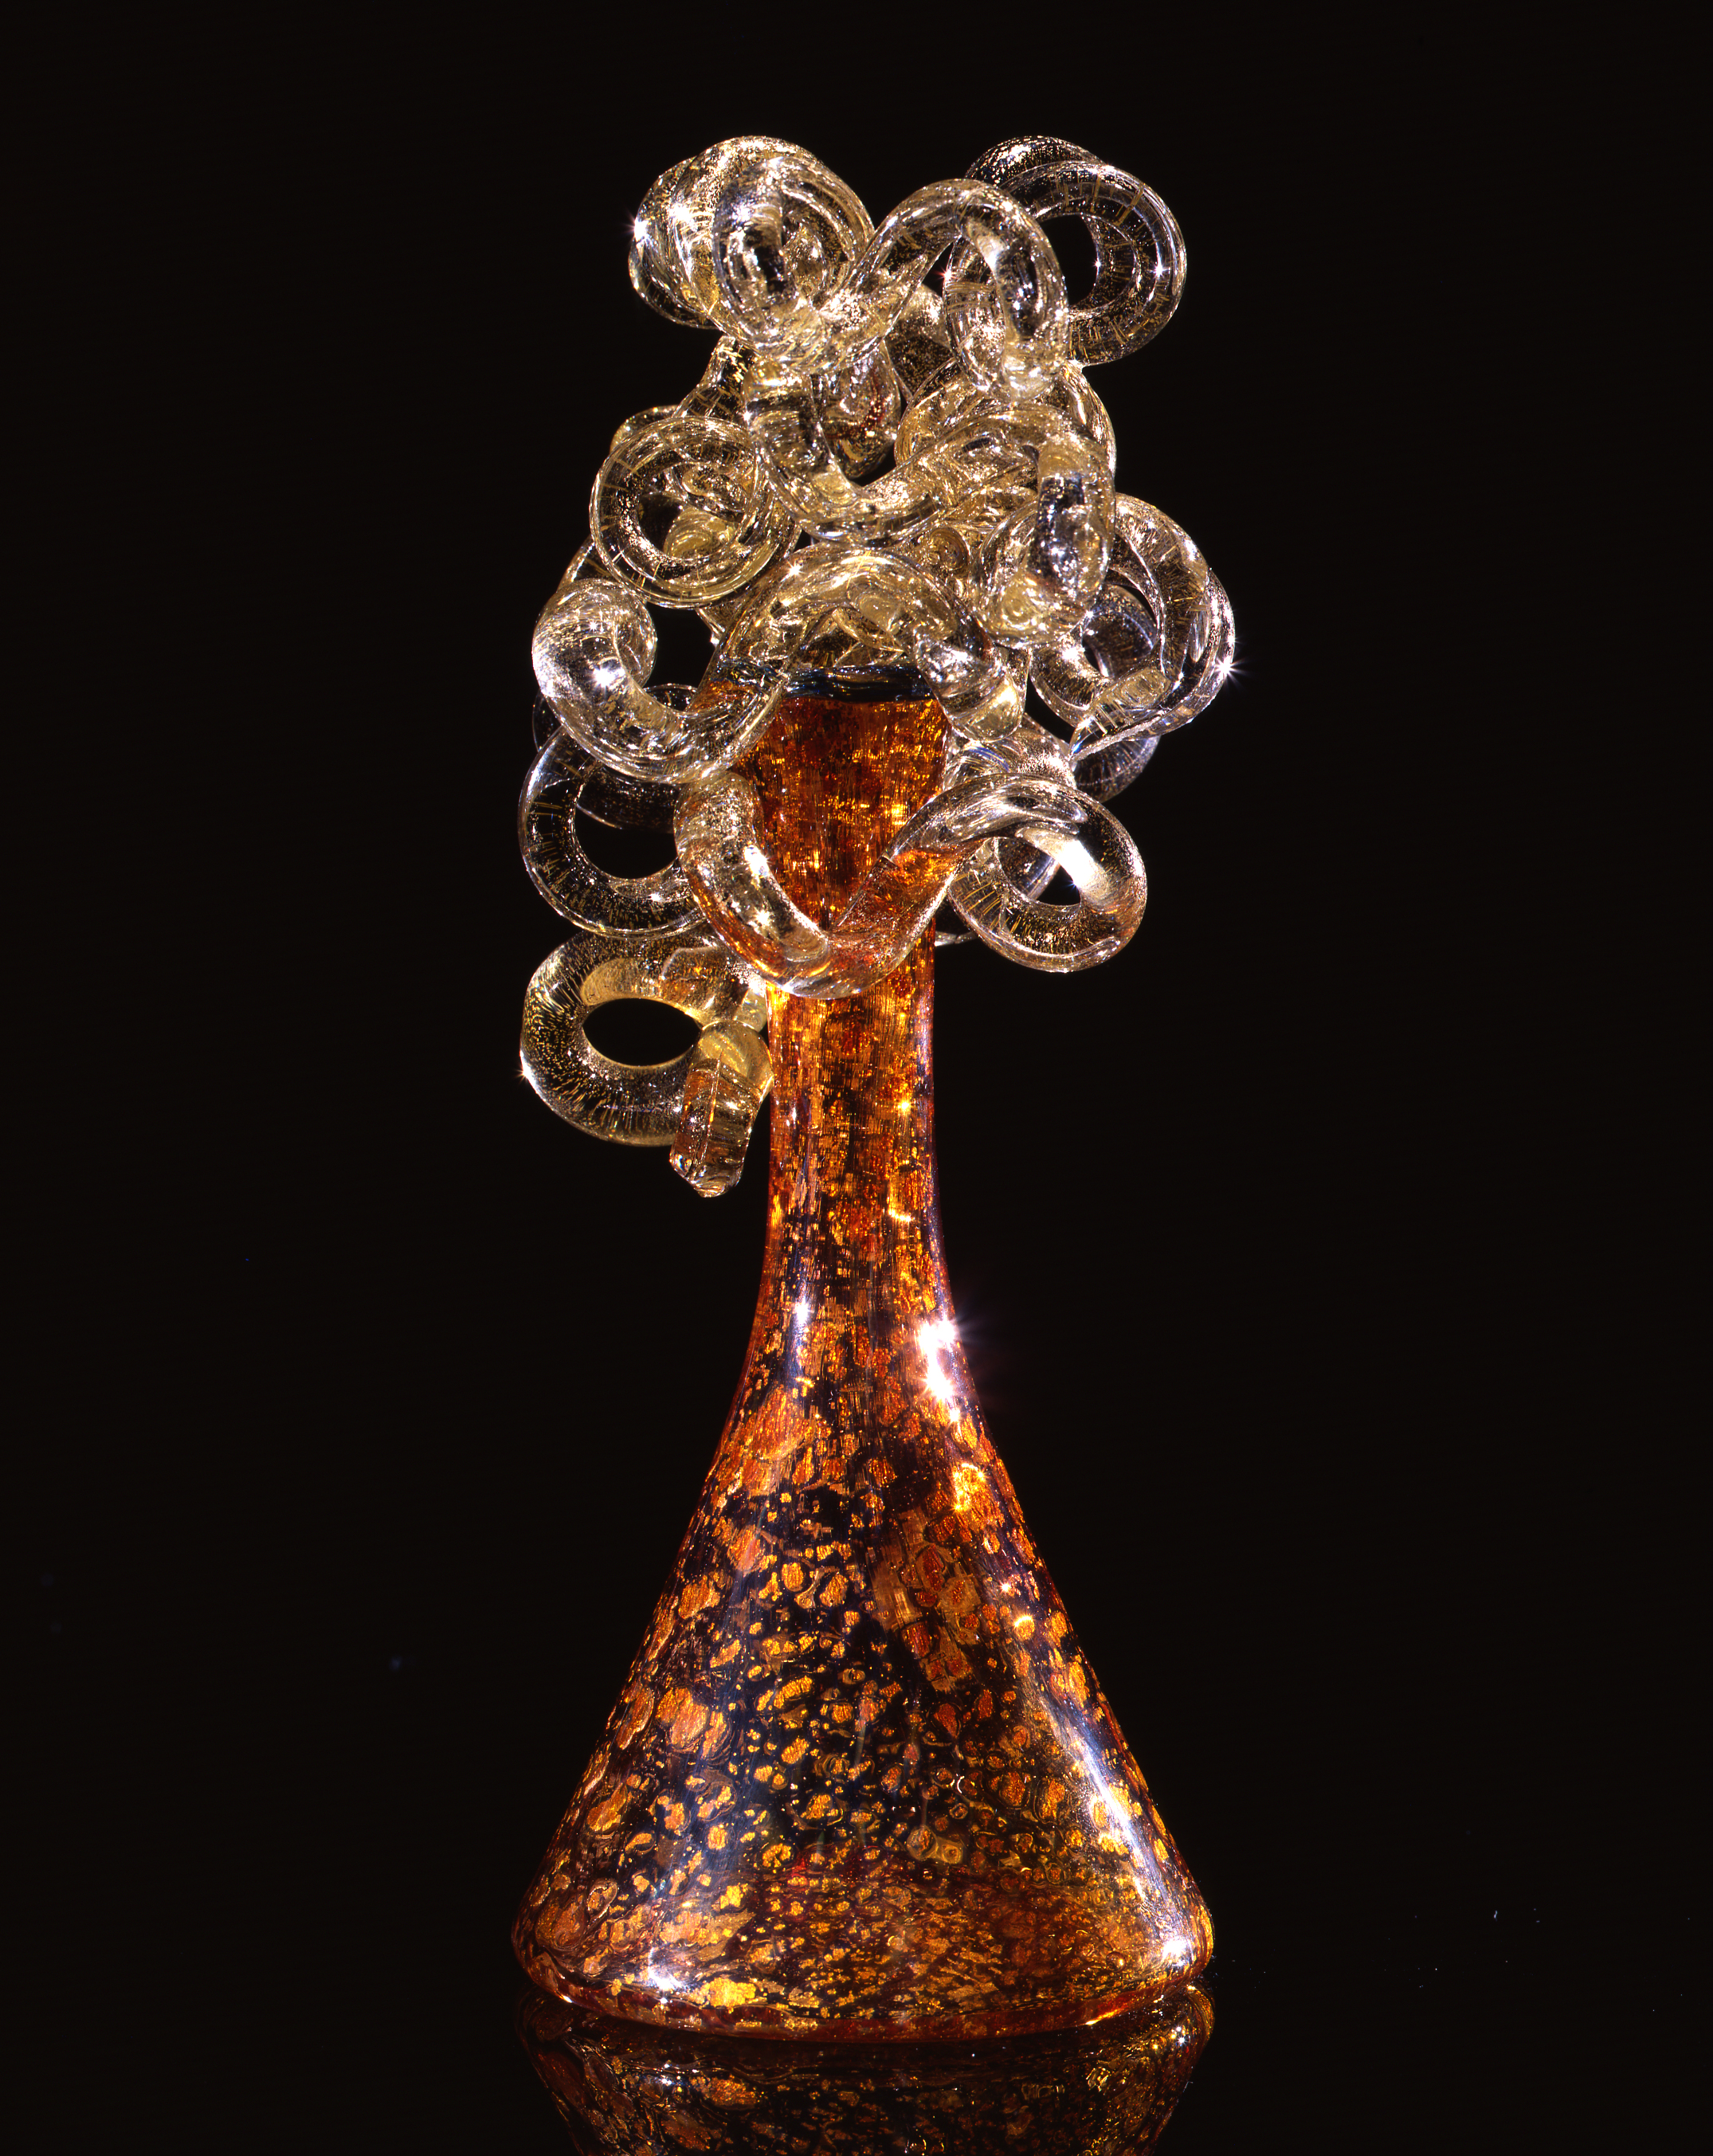 Dale Chihuly,  Copper Sienna Piccolo Venetian with Translucent Coils  (1990, glass, 17 x 17 x 18 inches)